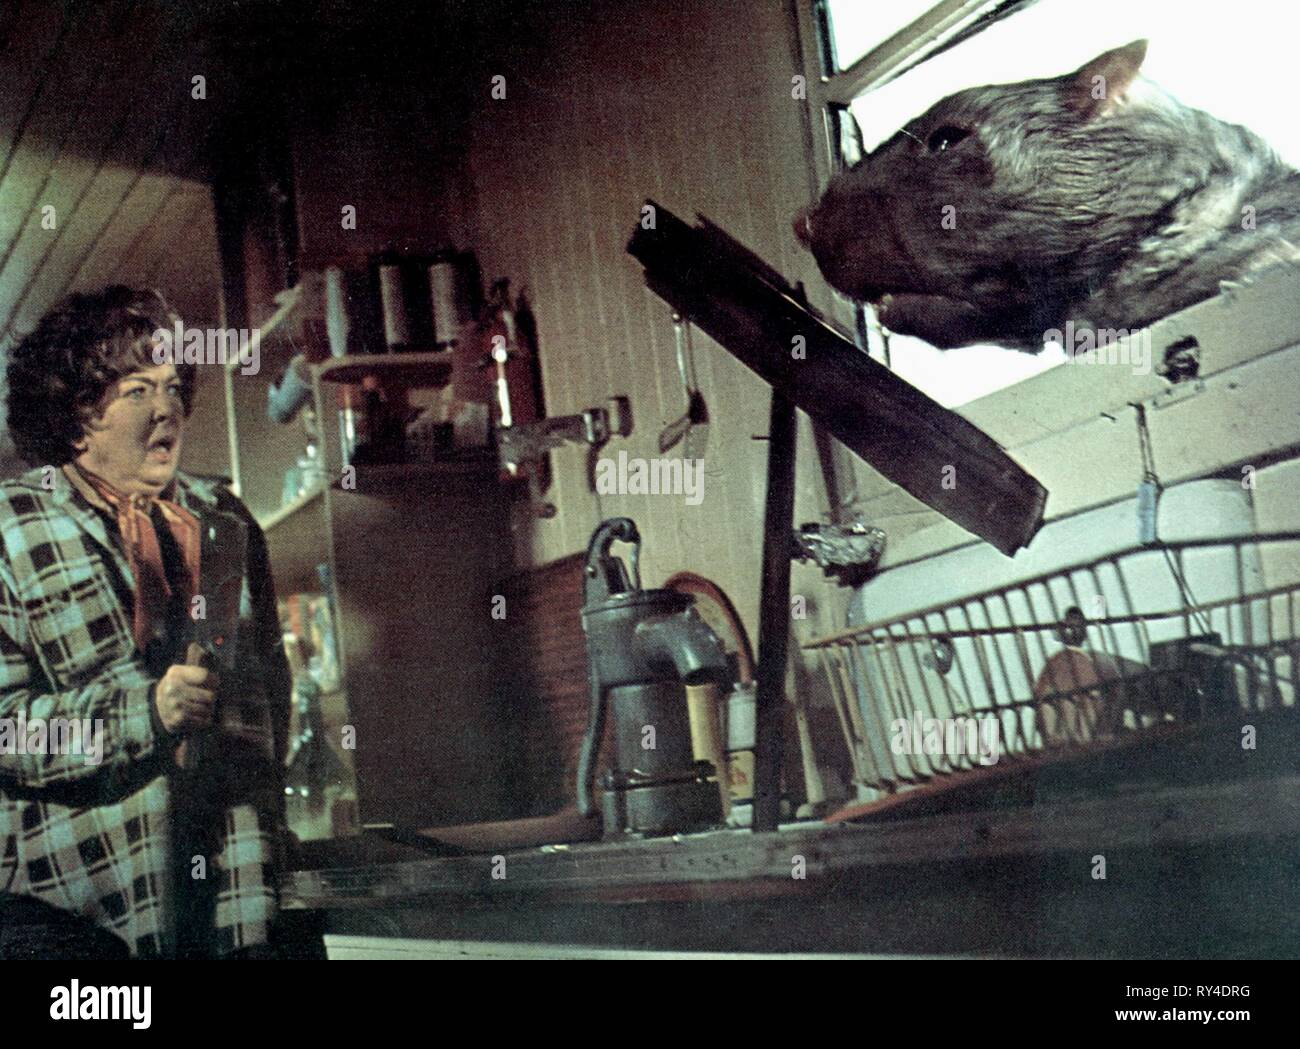 GIANT RAT, THE FOOD OF THE GODS, 1976 - Stock Image